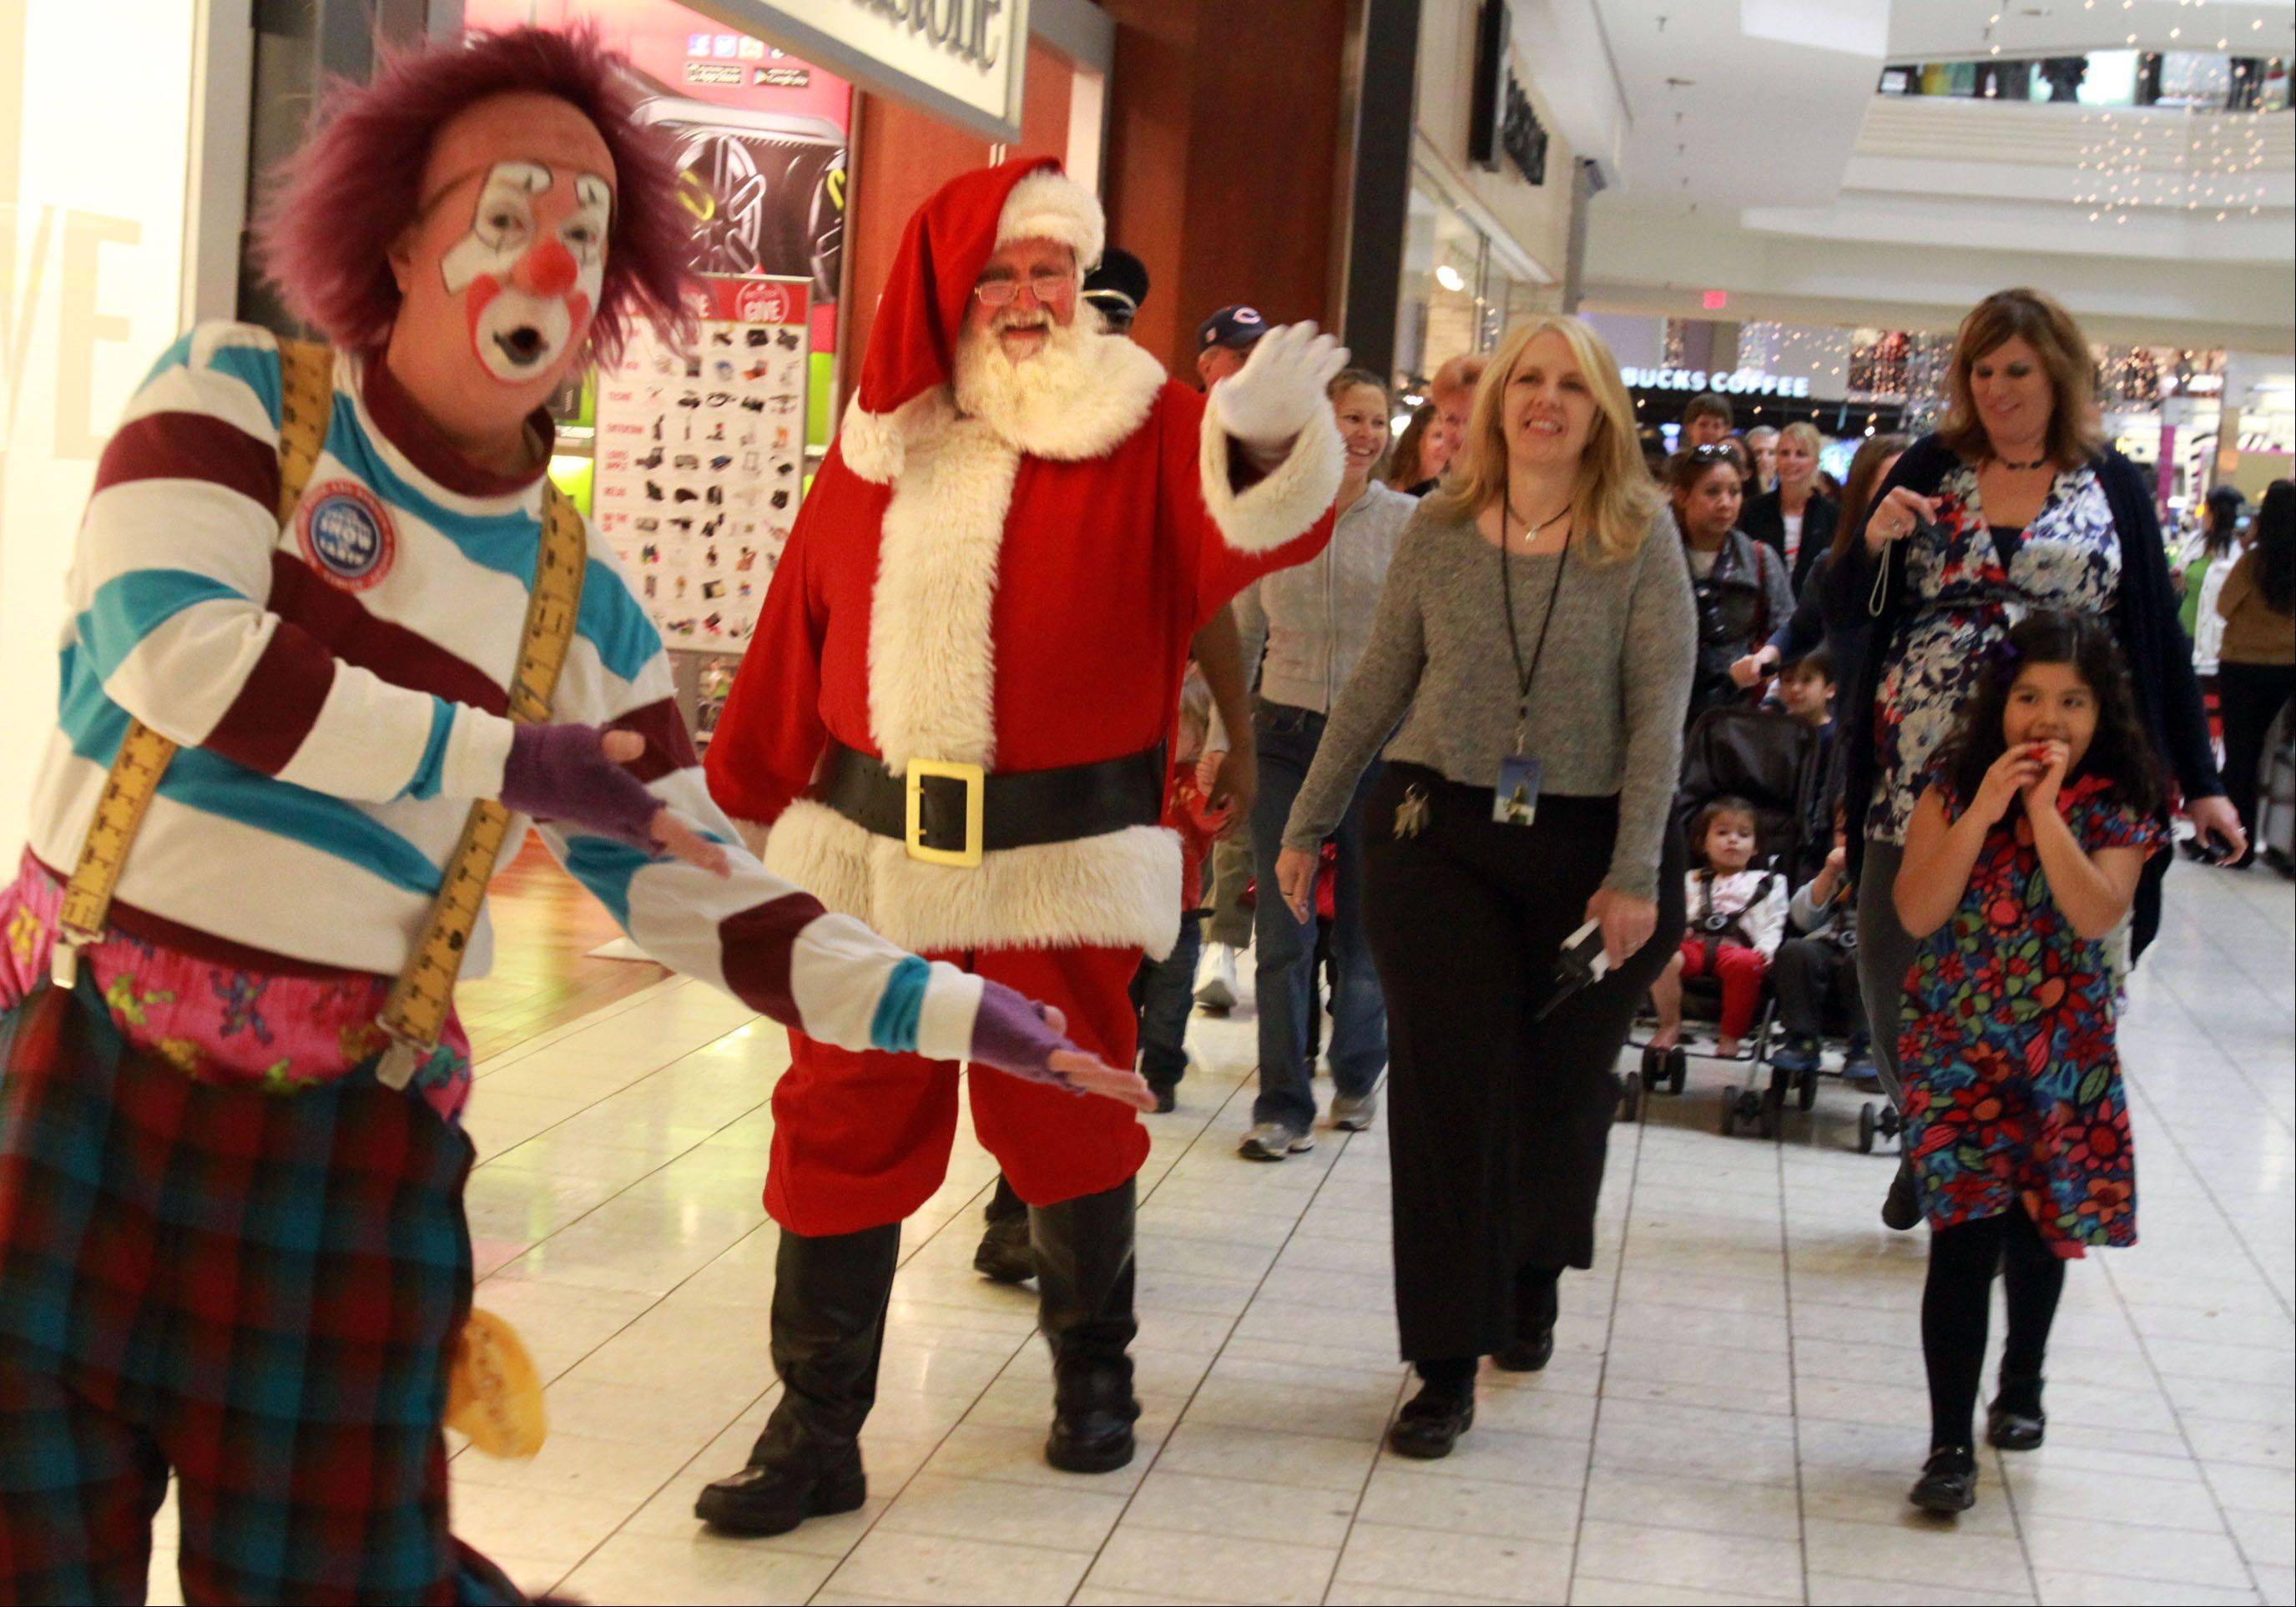 Santa Claus was joined by clowns and a marching band Thursday as he paraded through Woodfield Mall in Schaumburg to kick off the holiday shopping season.